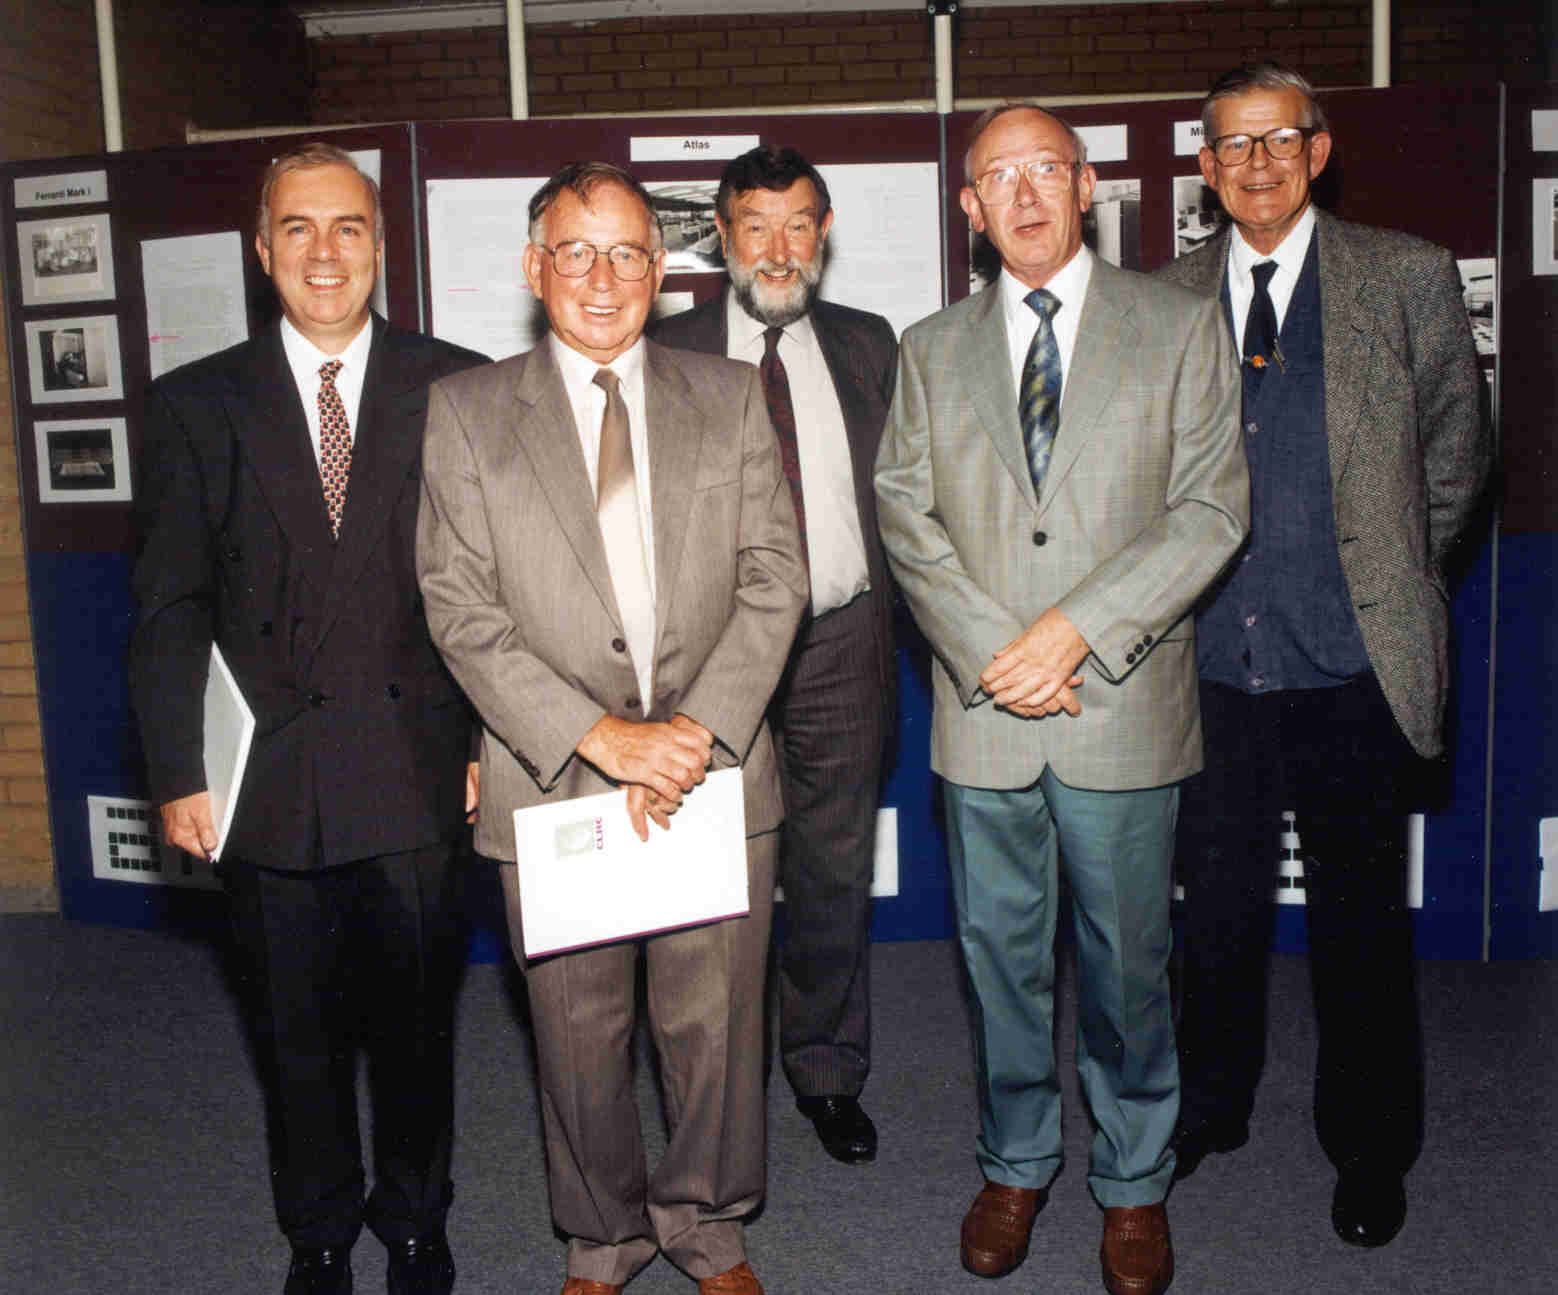 Jack's Celebration: Ken Byrd, Doug House, Bart Fossey, Mike Claringbold, Gary Williams